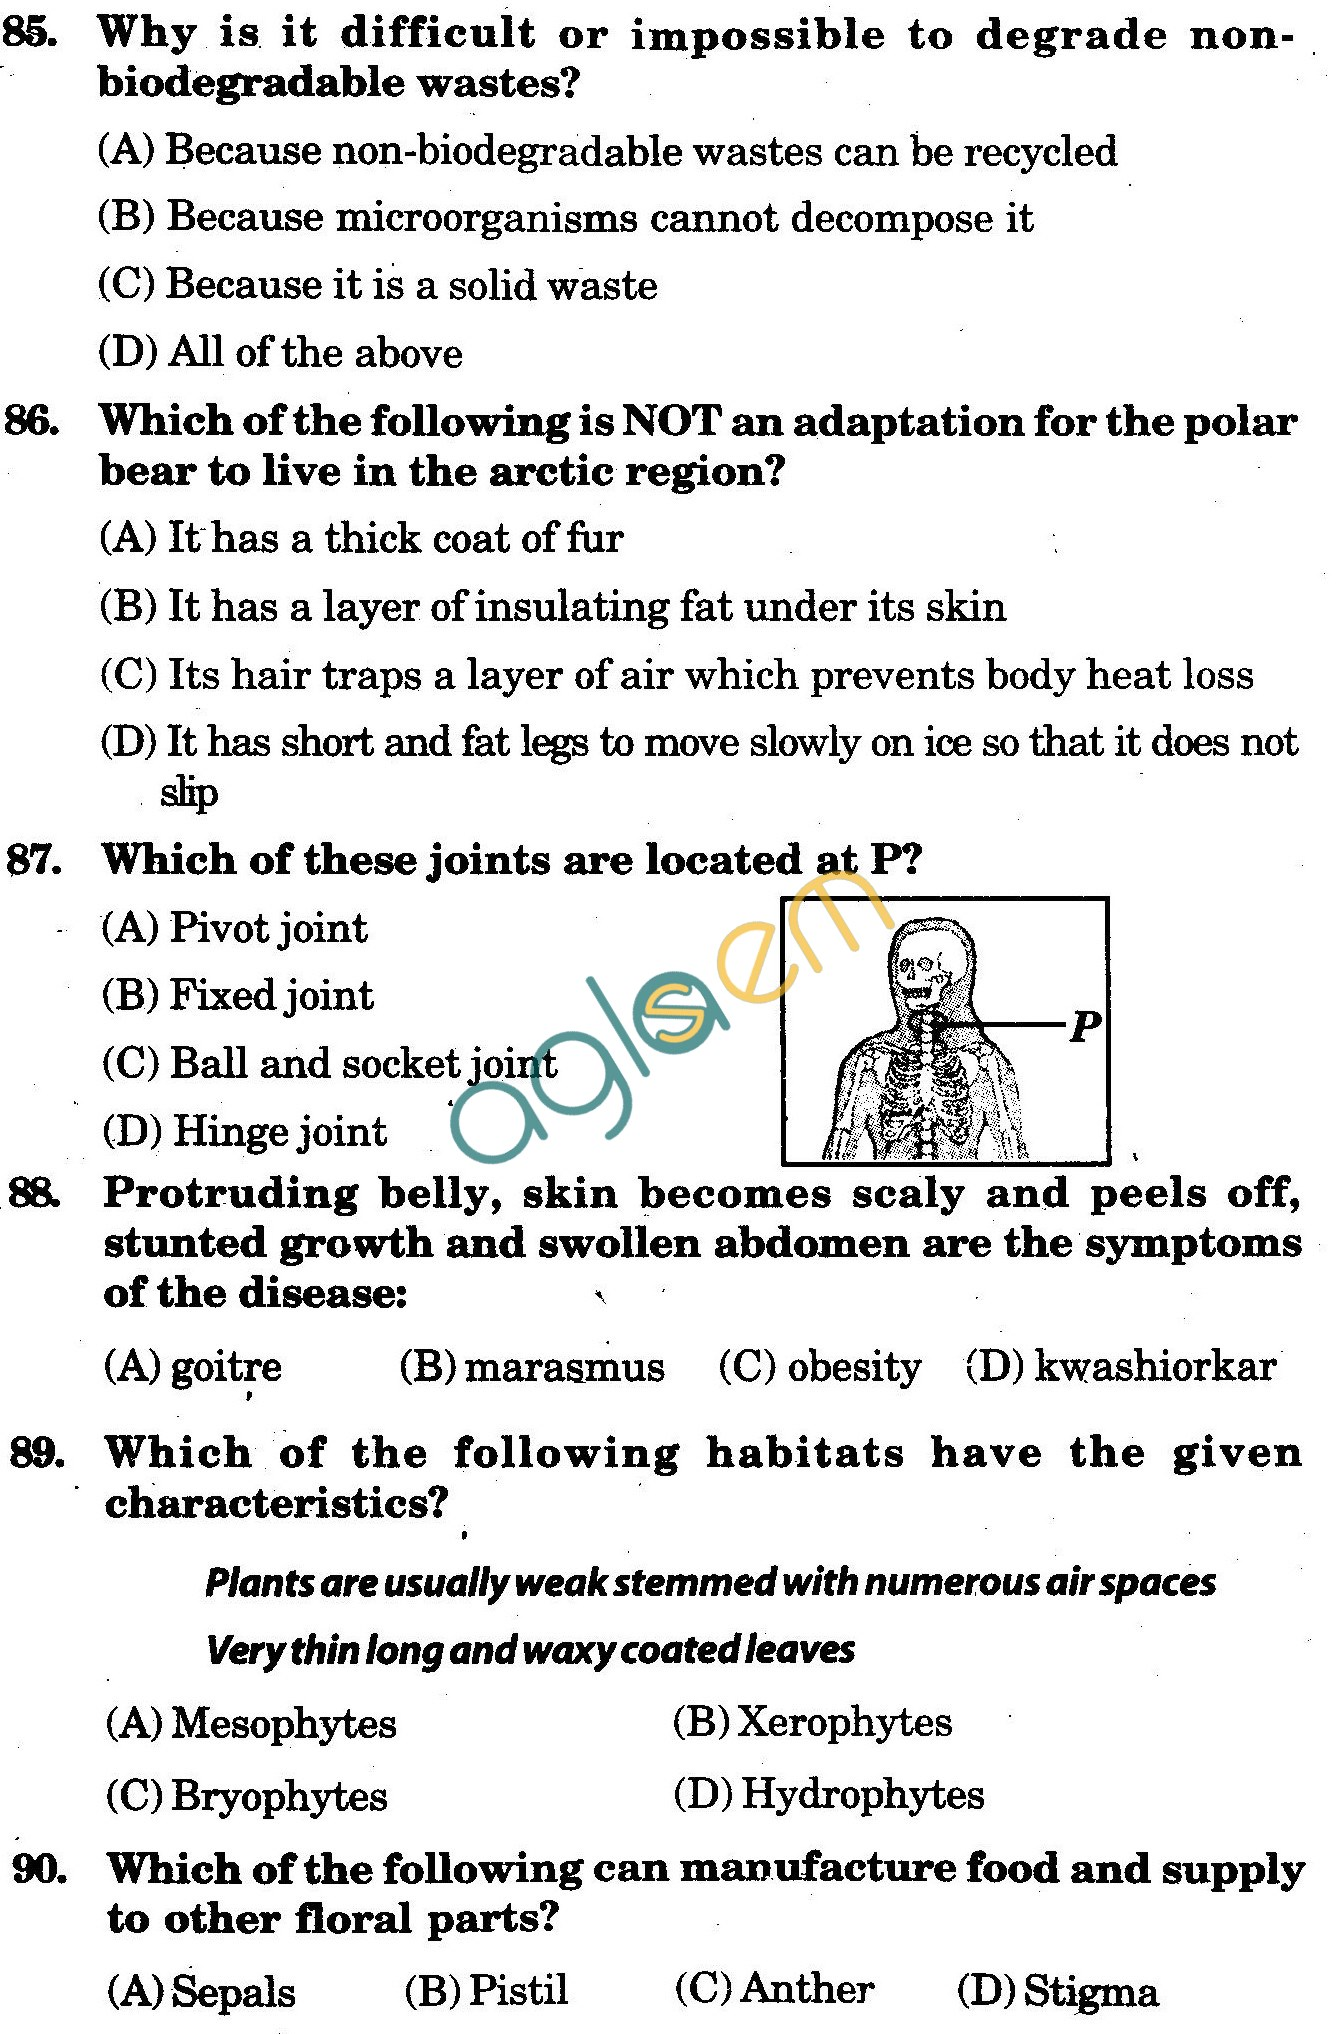 NSTSE 2009 Class VI Question Paper with Answers - Biology